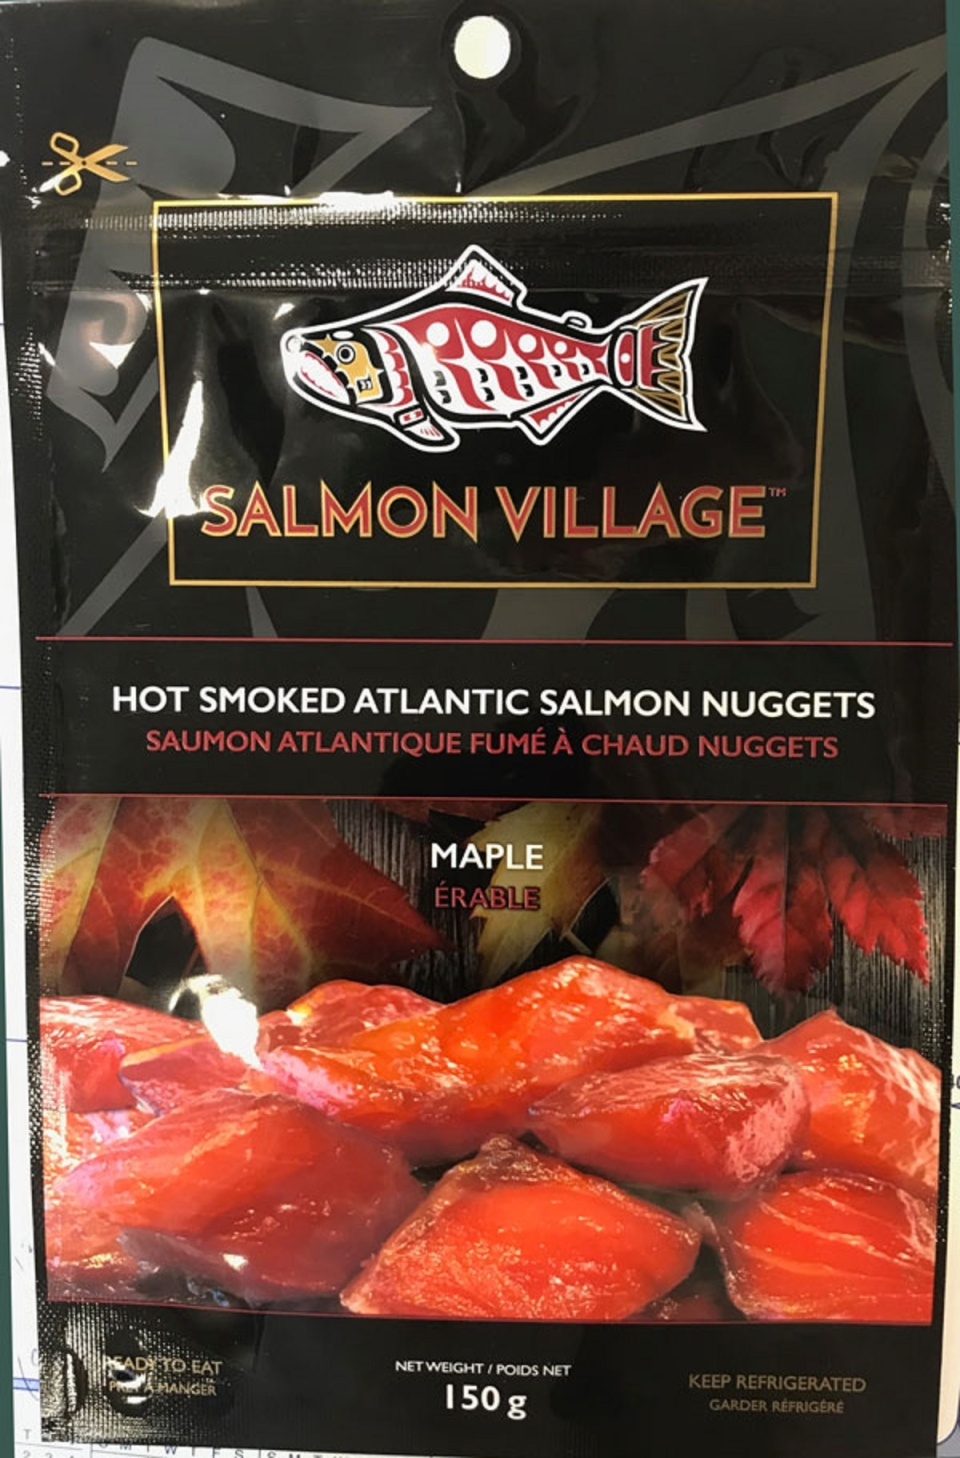 Salmon Village Hot Smoked Atlantic Salmon Nuggets - Maple – 150 grams. (Canadian Food Inspection Agency)